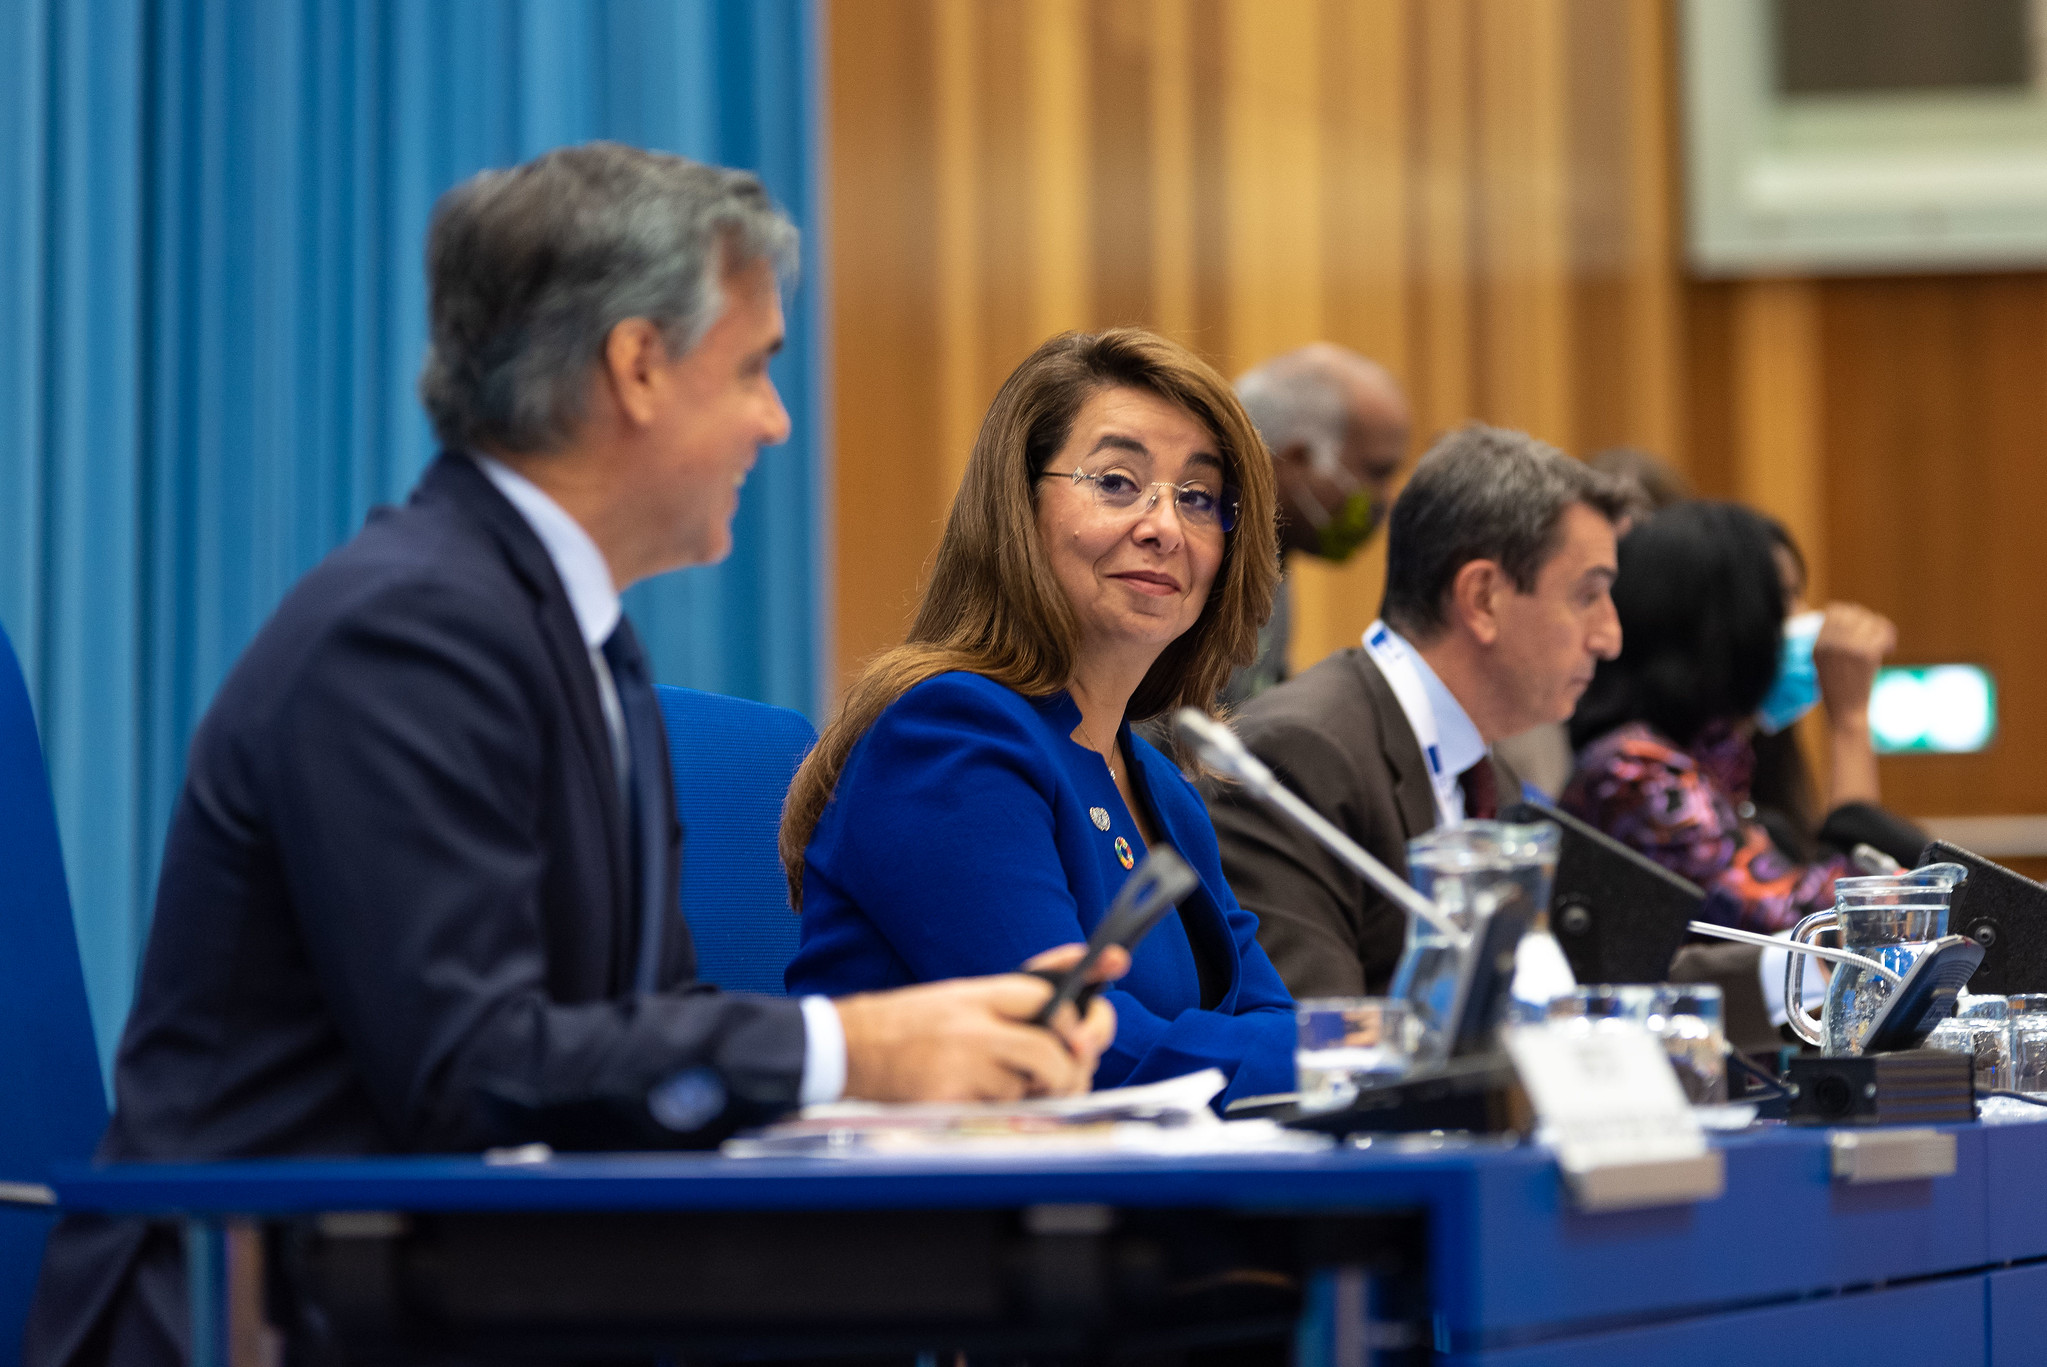 UNODC Executive Director Calls for Stronger International Cooperation, on 10th Session of the Conference of the Parties